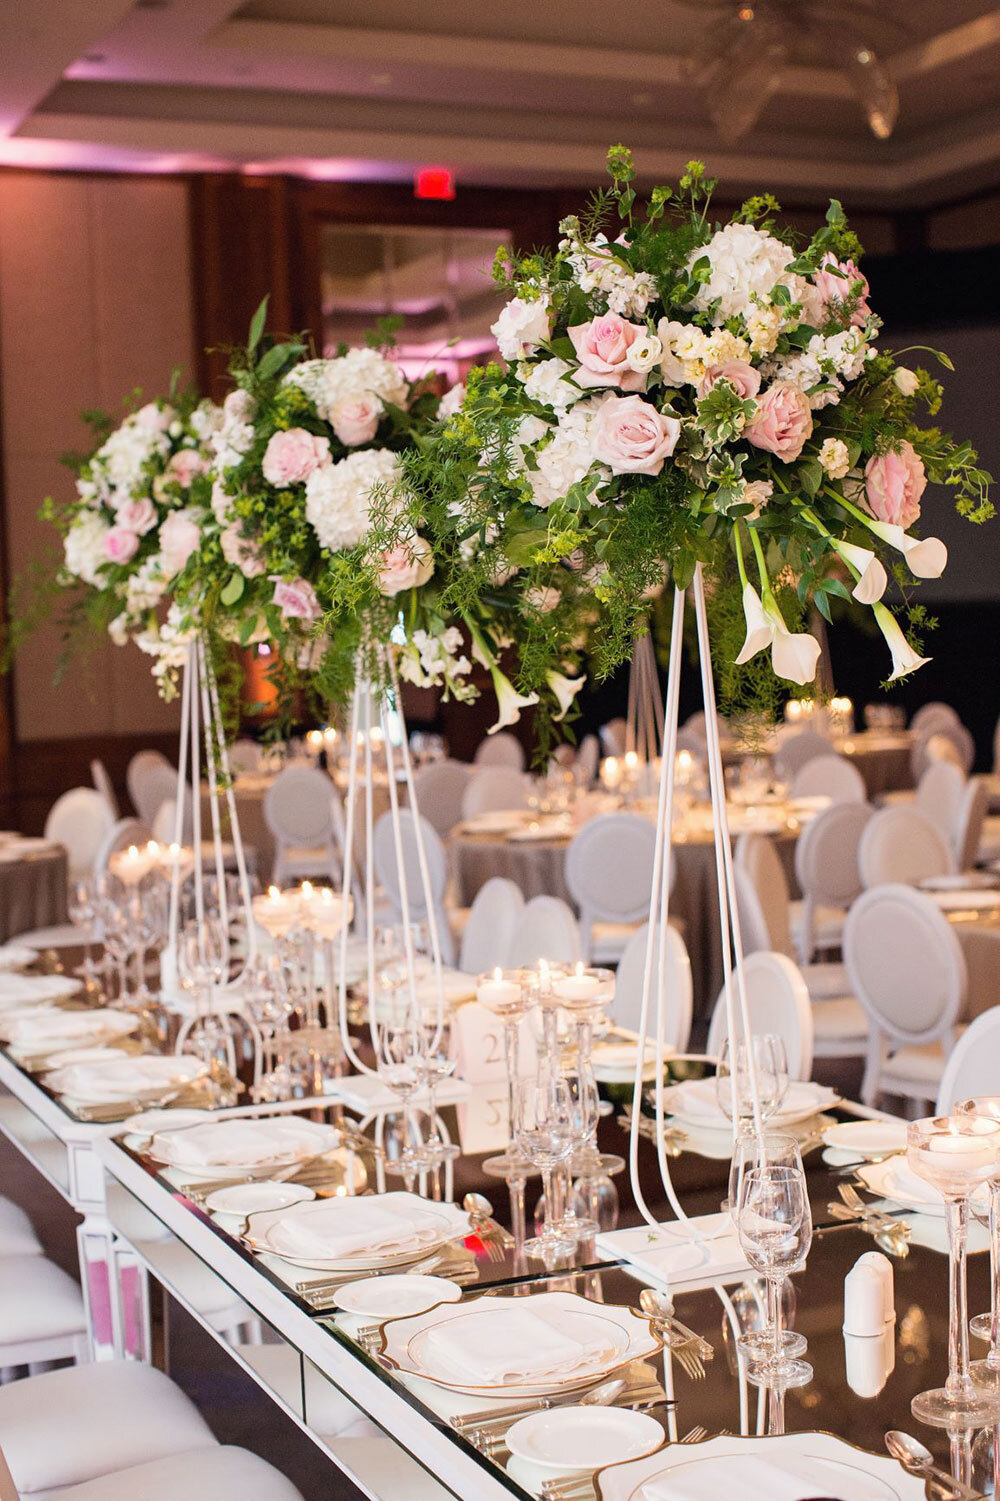 Paras-Events-Modern-Blush-Crystal-Chandeliers-Reception-Backdrop-Ritz-Carlton-Toronto-2.jpg